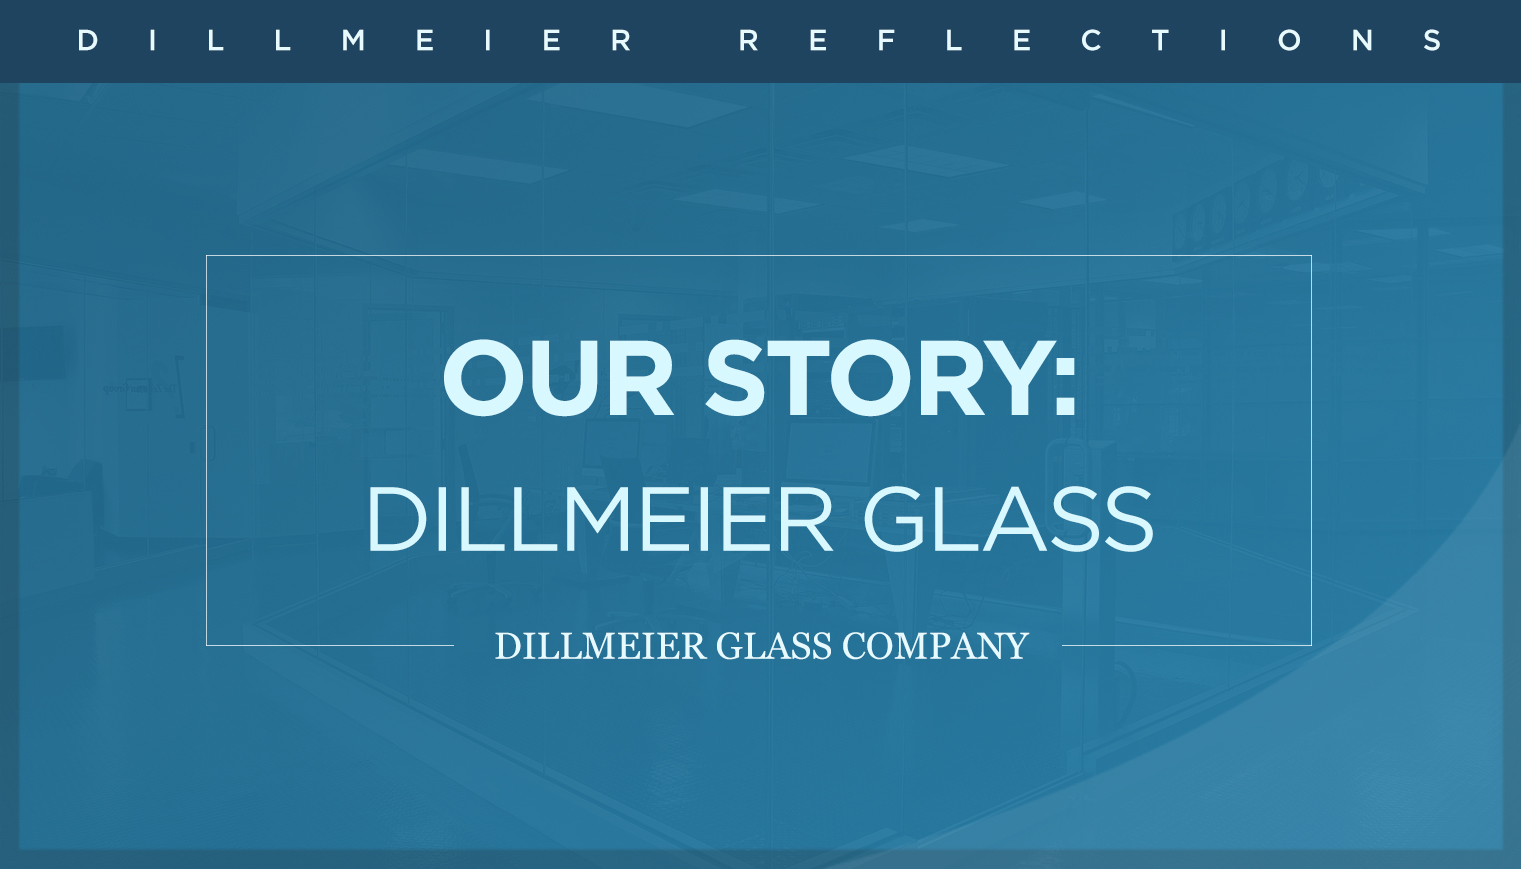 Our Story: Dillmeier Glass